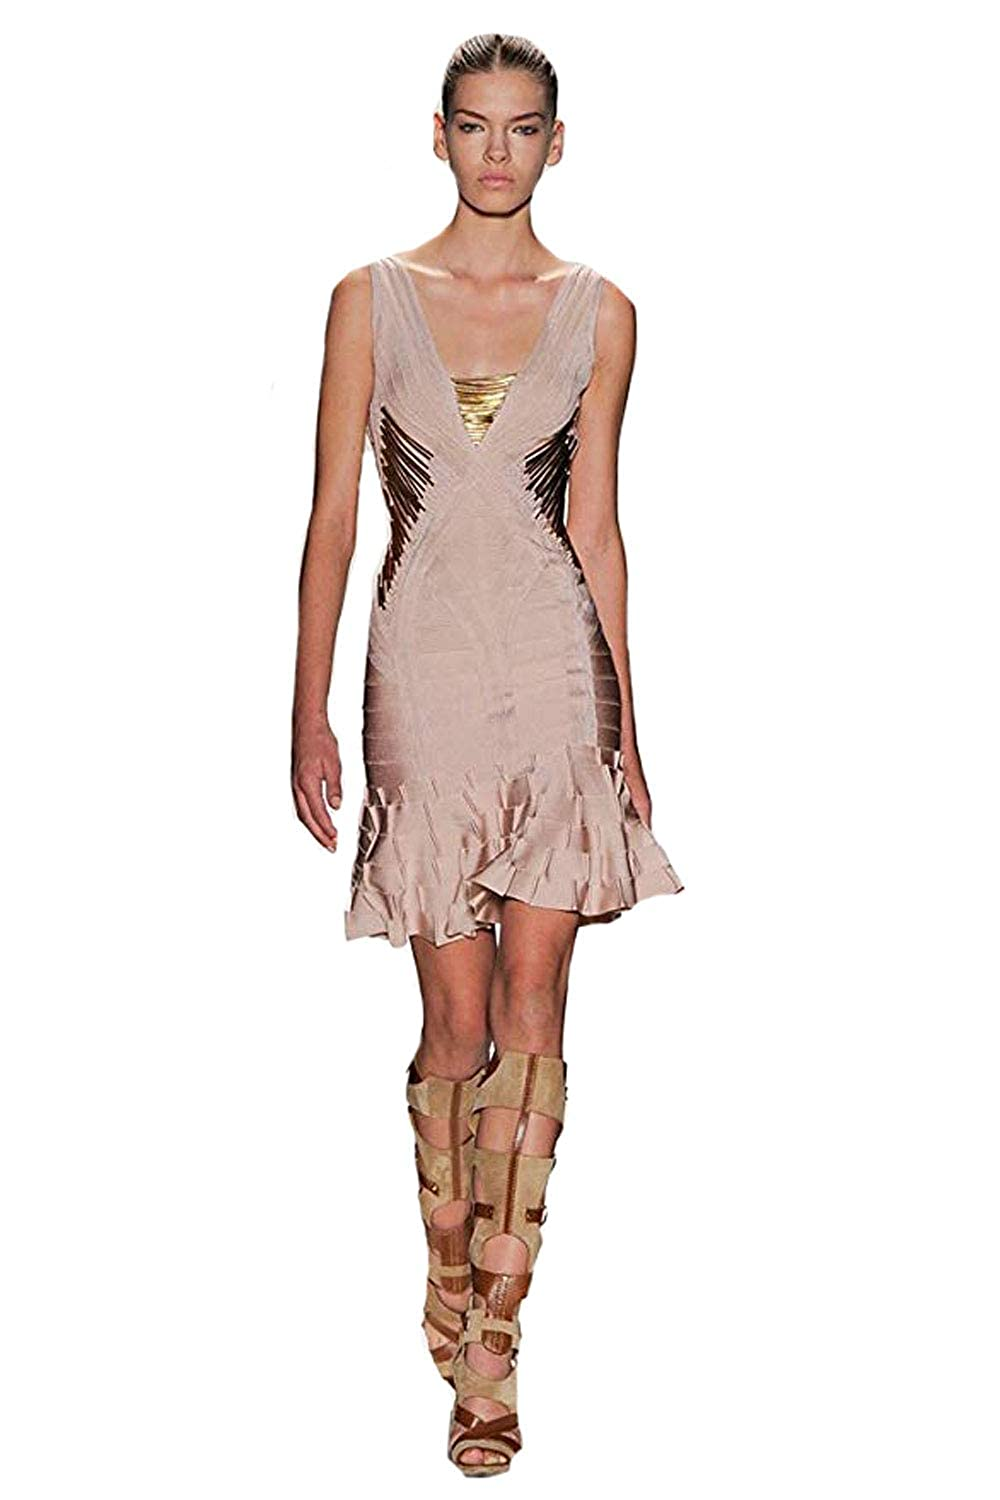 9ebaee7ffbe6 Herve Leger Gold Metal Nude Flared Bandage Dress at Amazon Women s Clothing  store